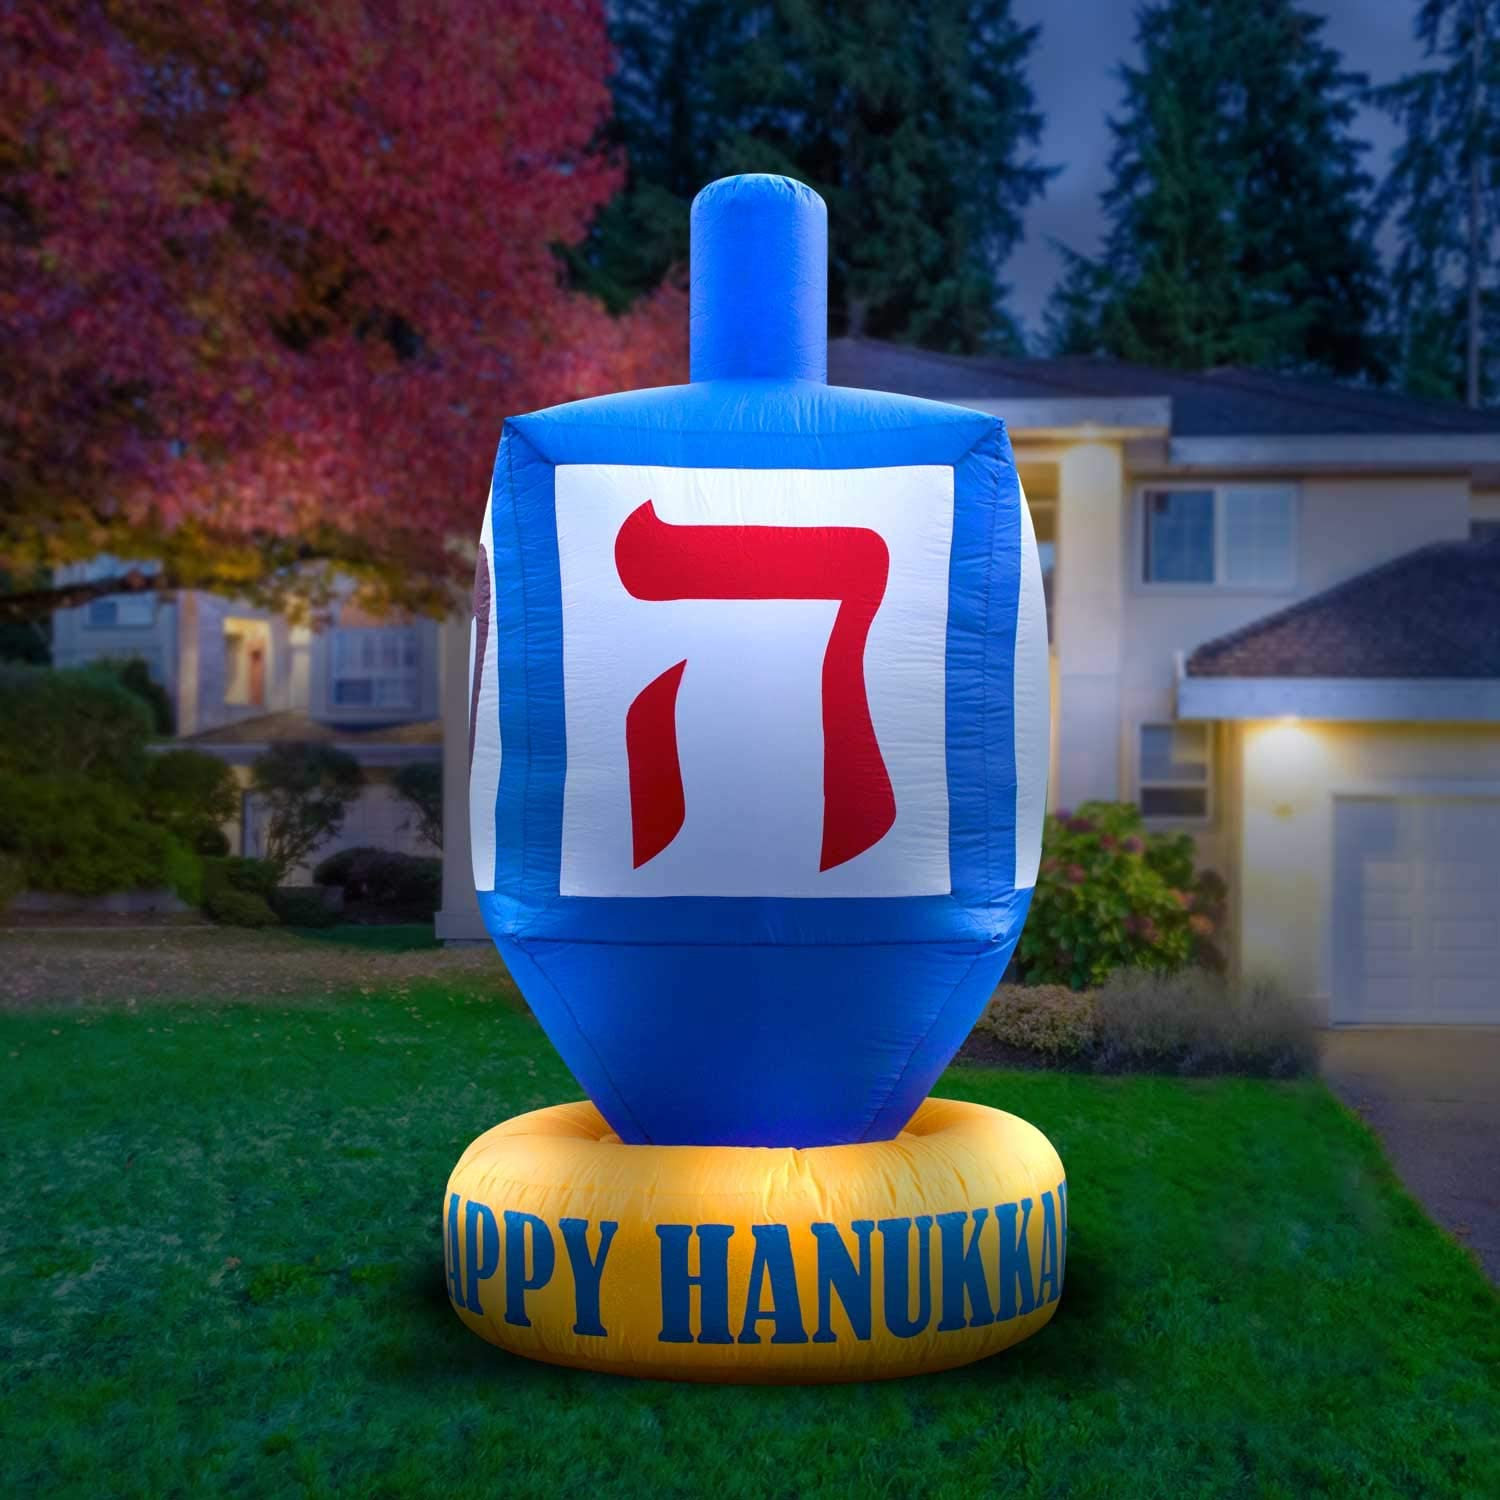 Holidayana Hanukkah Dreidel Inflatable Decoration - 8ft Giant Hanukkah Dreidel Inflatable Yard Decor with Built-in Bulbs, Tie-Down Points, and Powerful Built in Fan